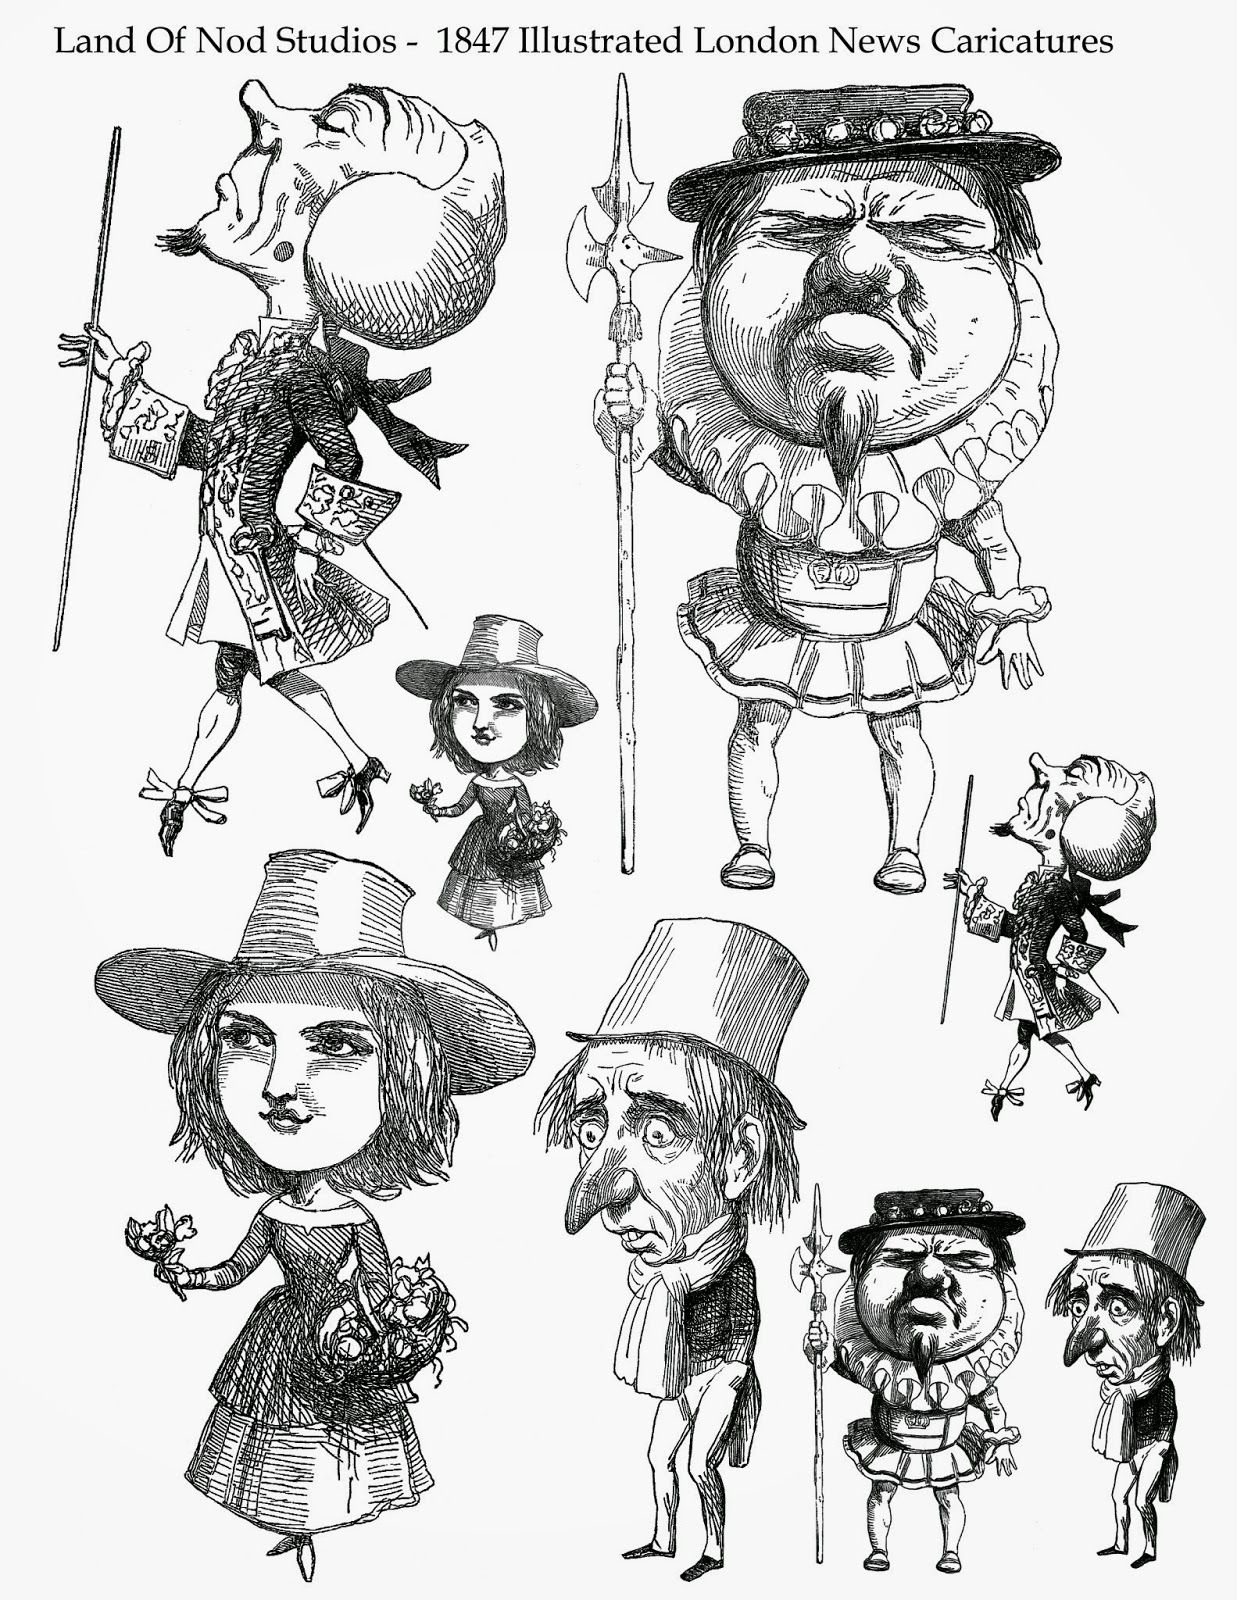 Caricatures from my 1847 Illustrated London News bound